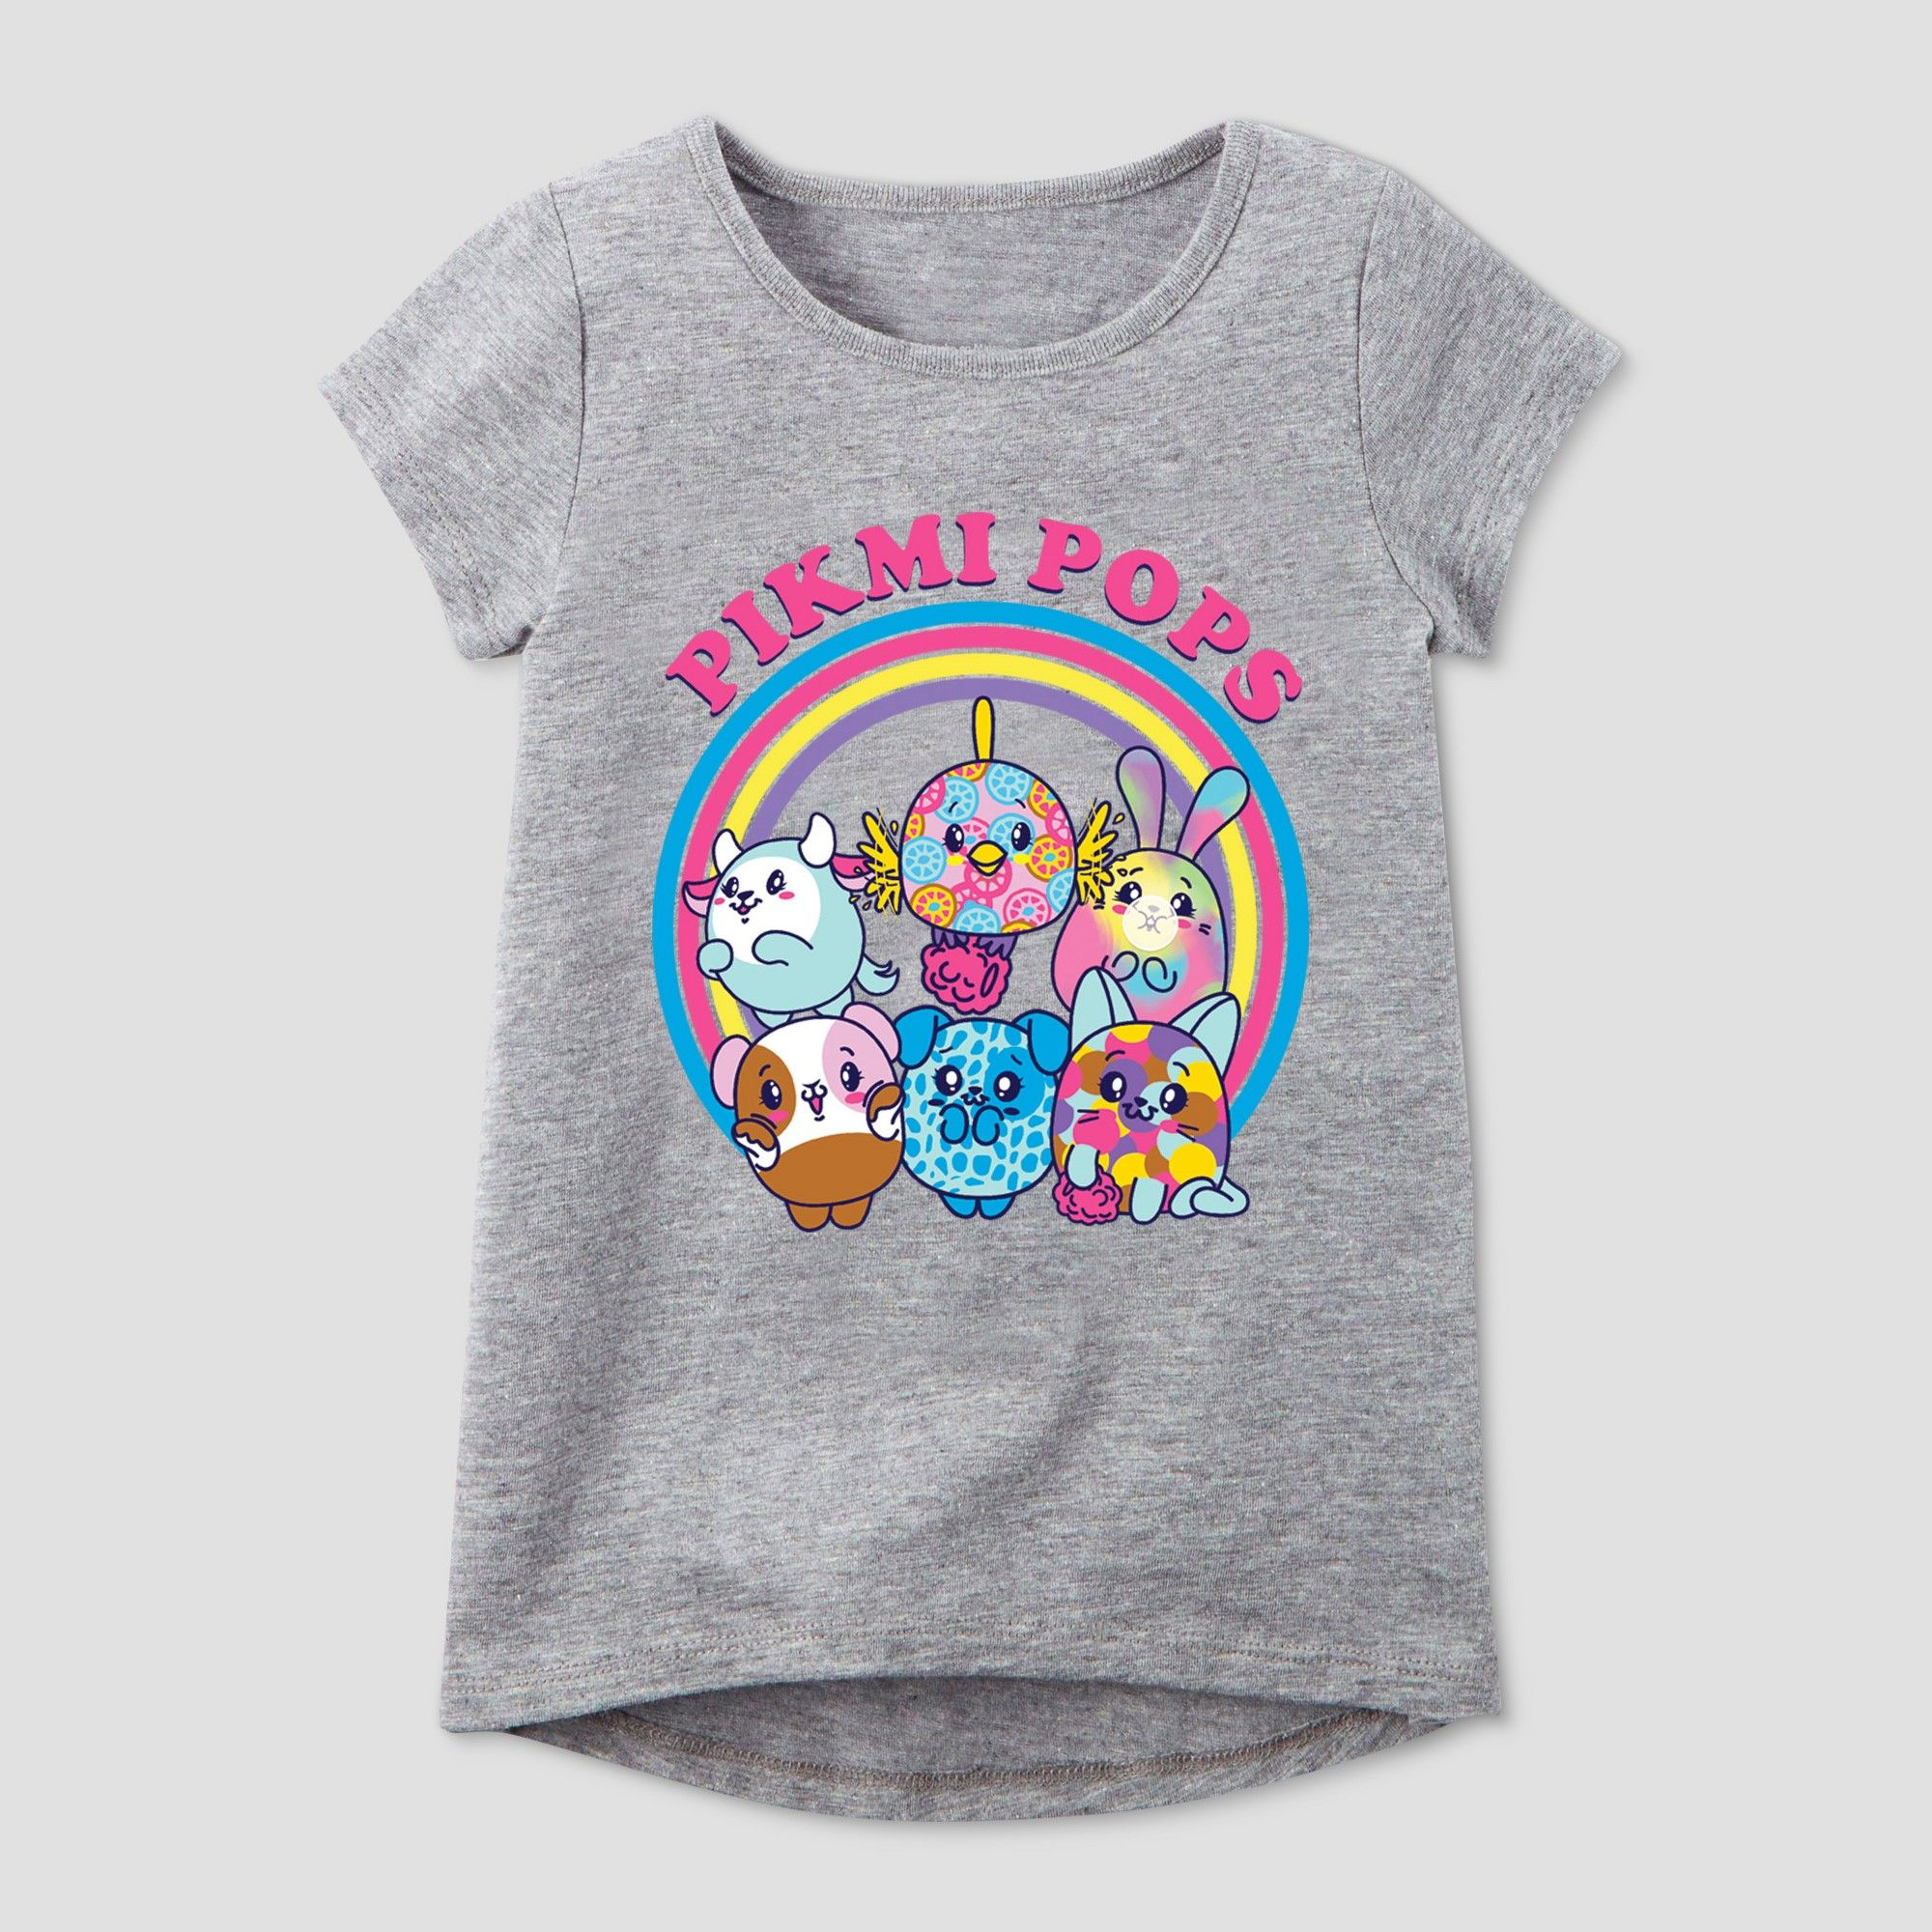 98c785e6 Girls' Pikmi Pops Short Sleeve T-Shirt - Heather Gray XS in 2019 ...